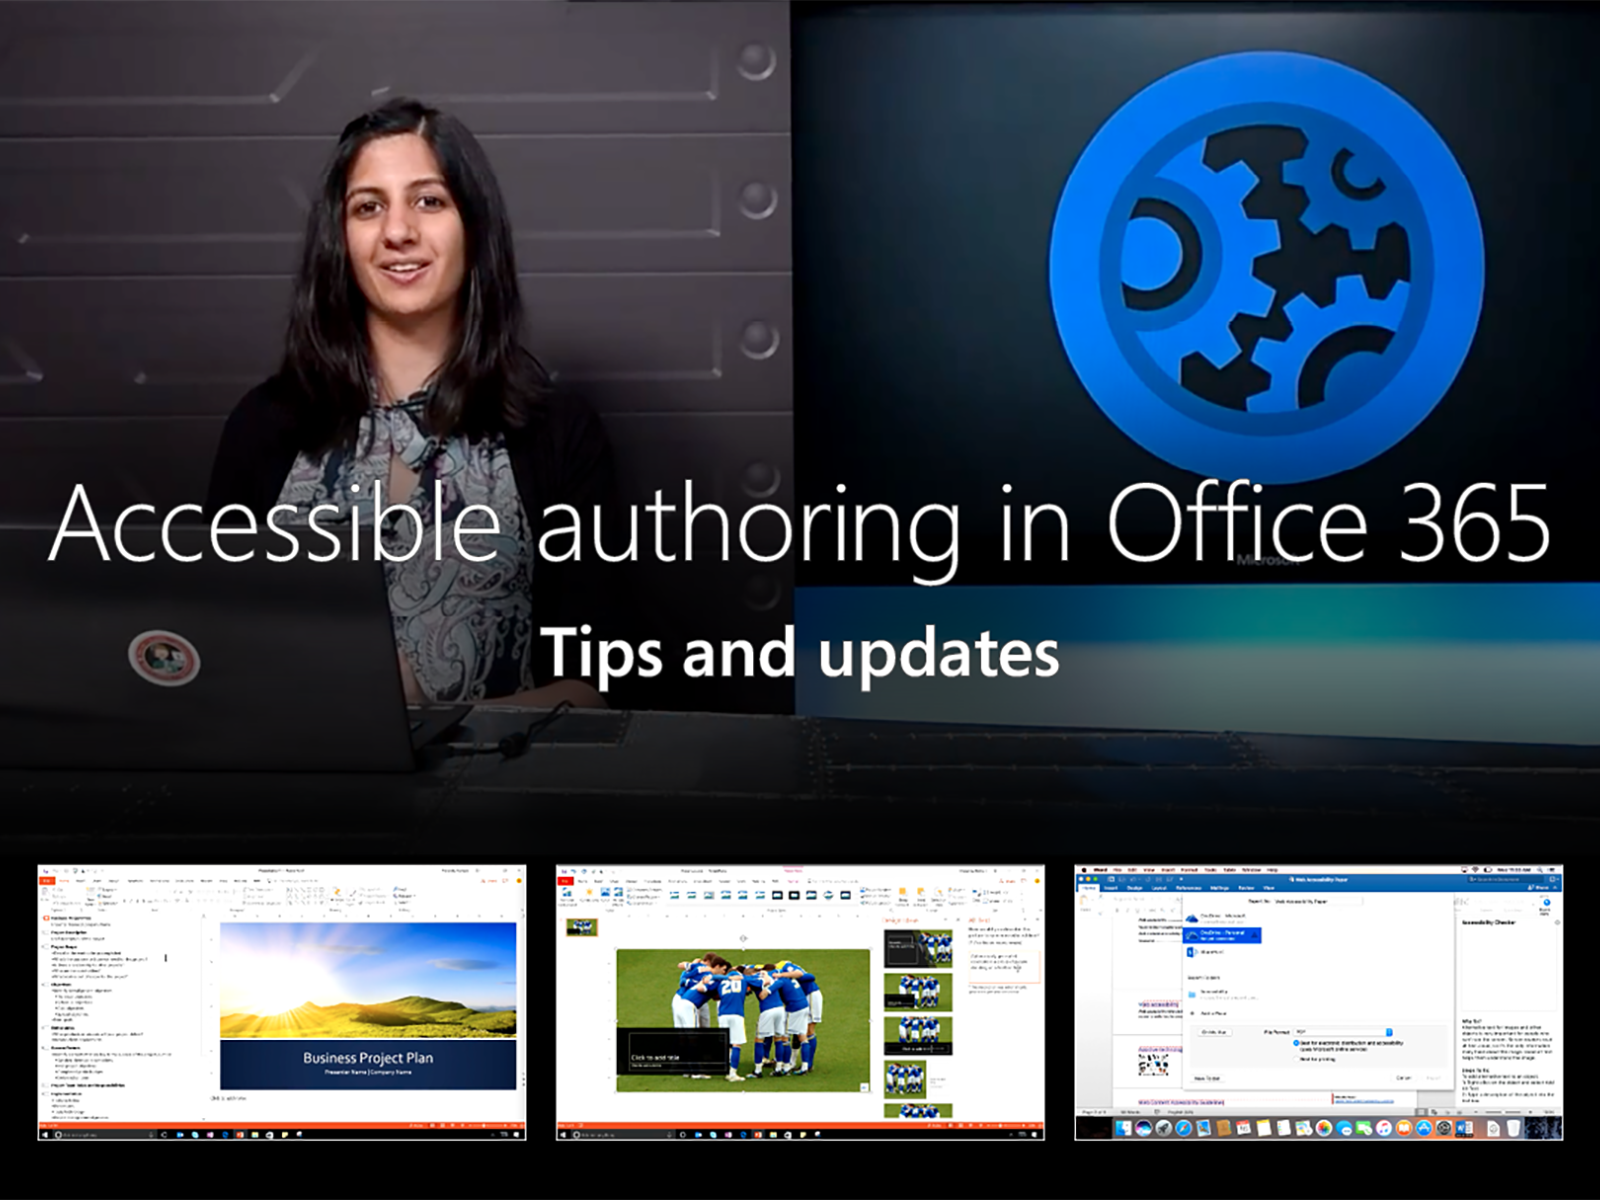 Artwork for Accessible authoring tips and updates in Office 365